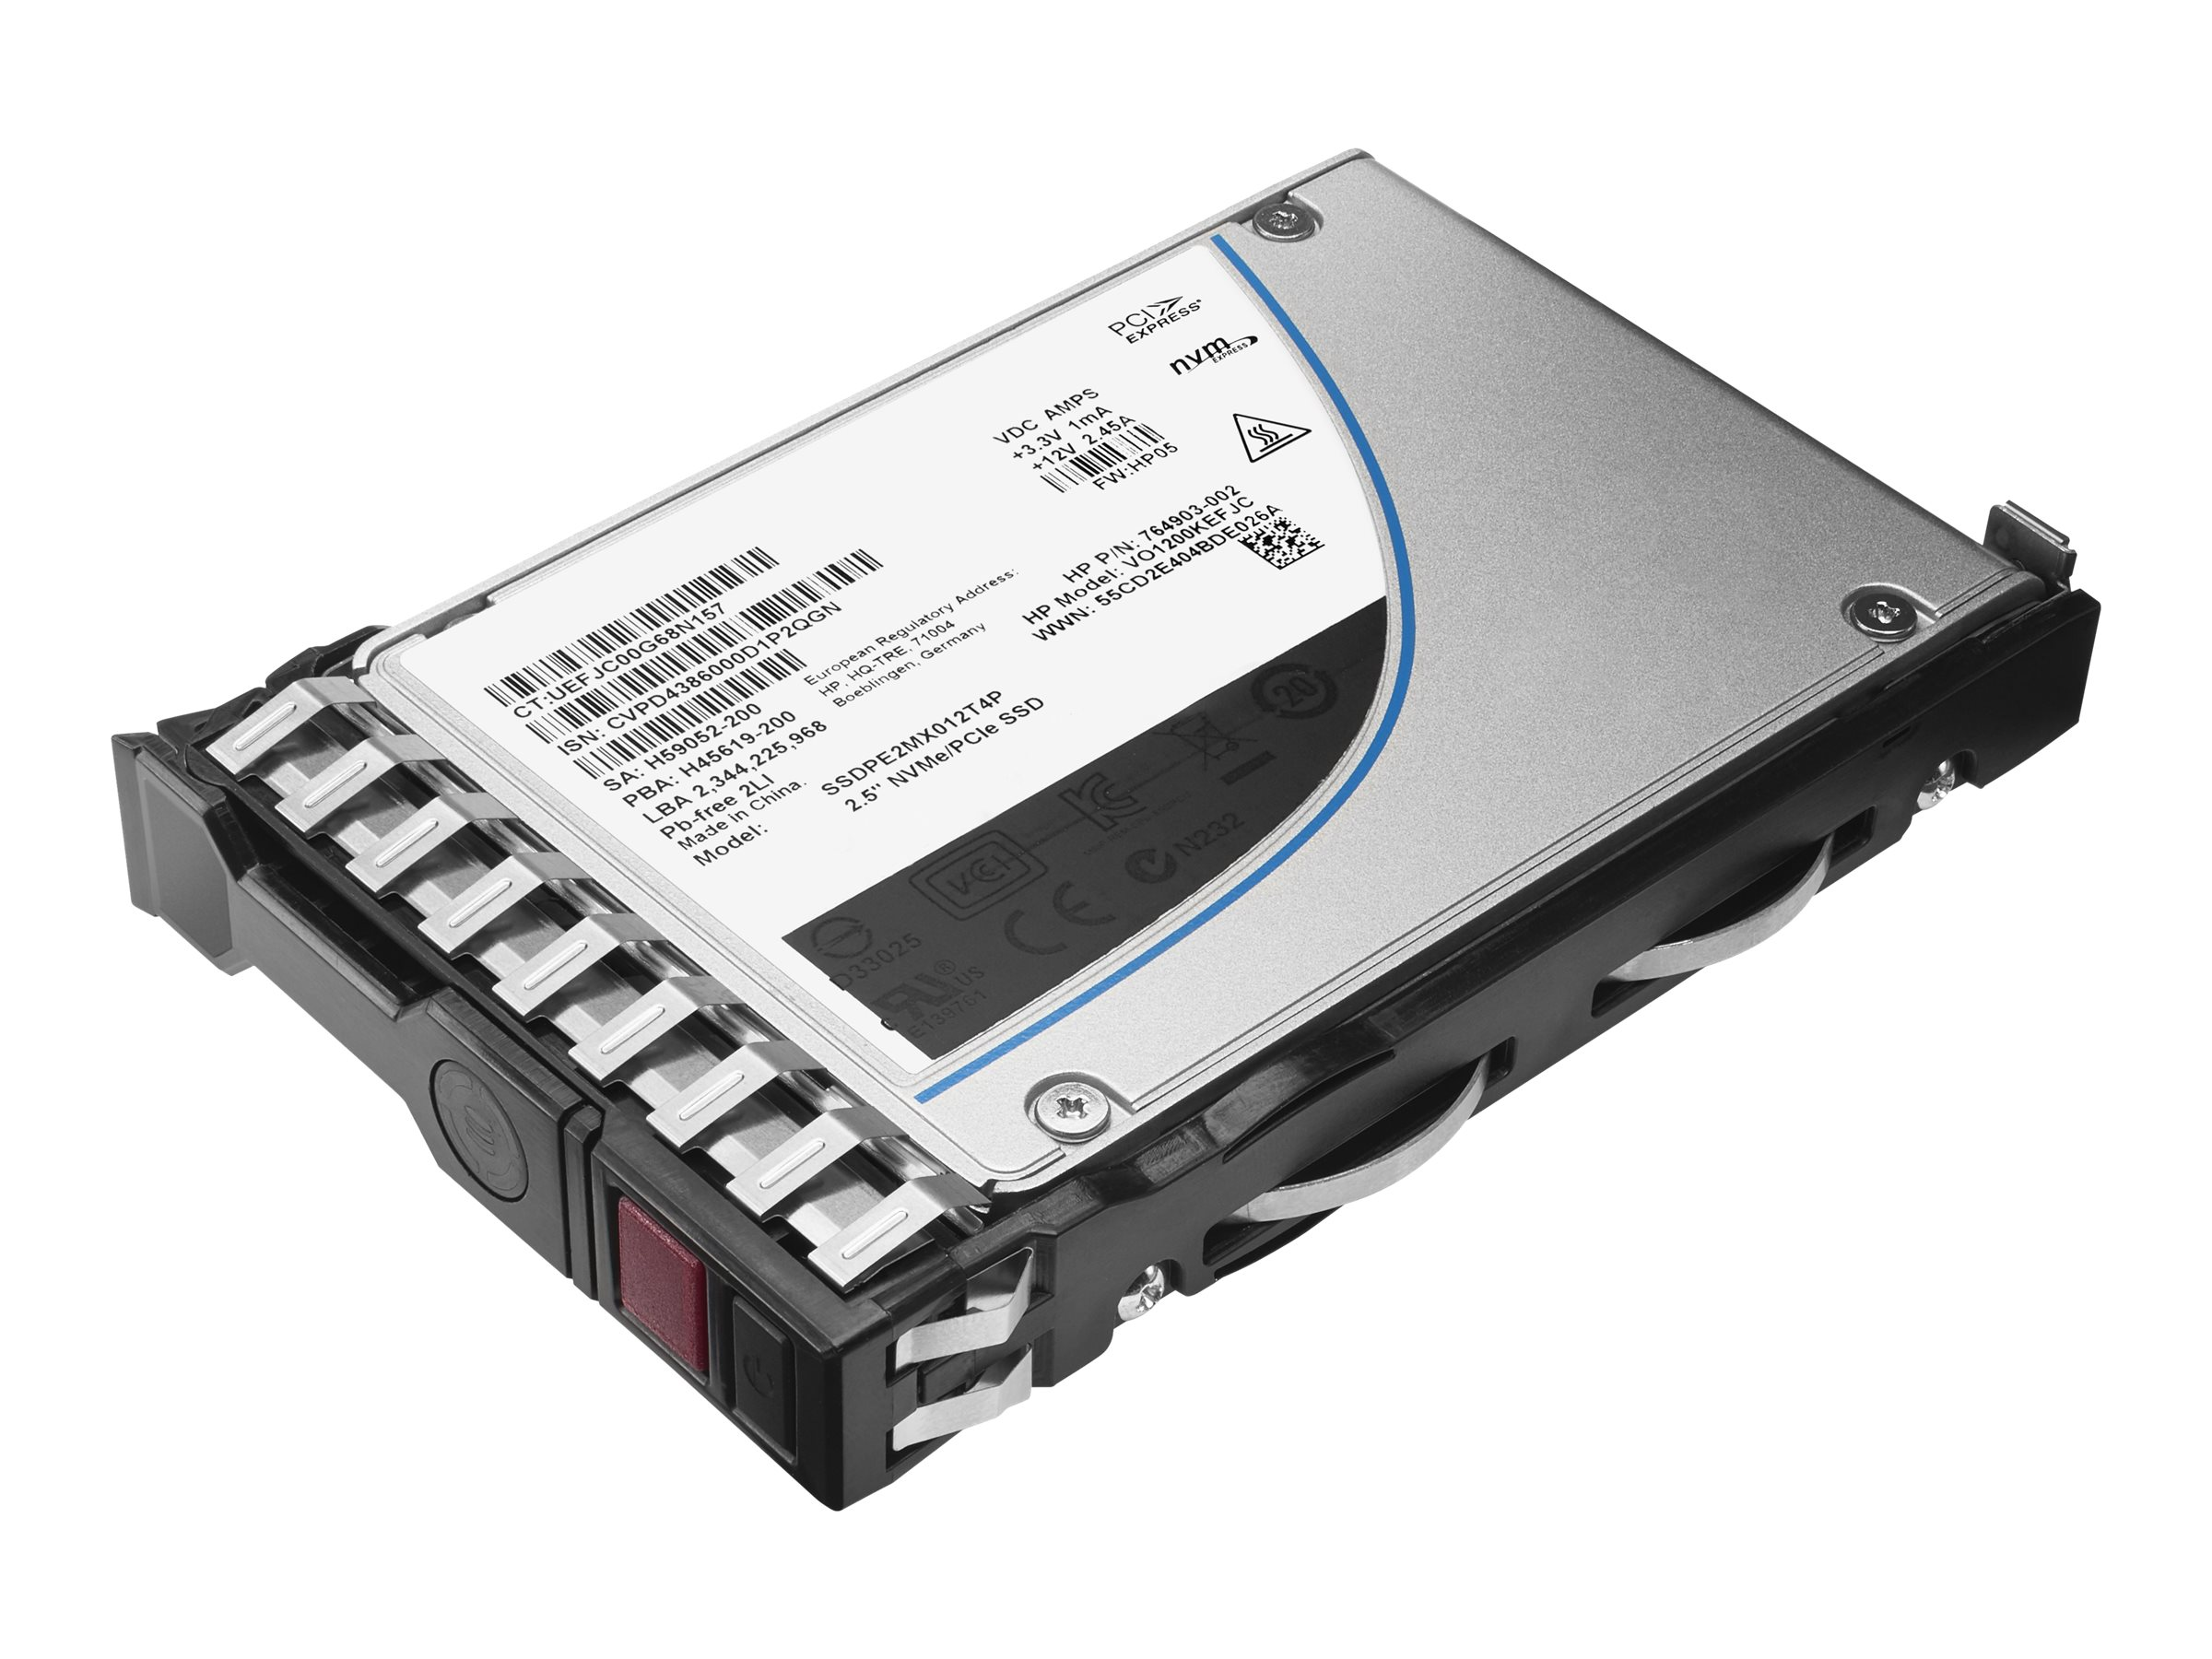 HPE 1.92TB SATA 6Gb s Mixed Use-3 SFF 2.5 Smart Carrier Solid State Drive